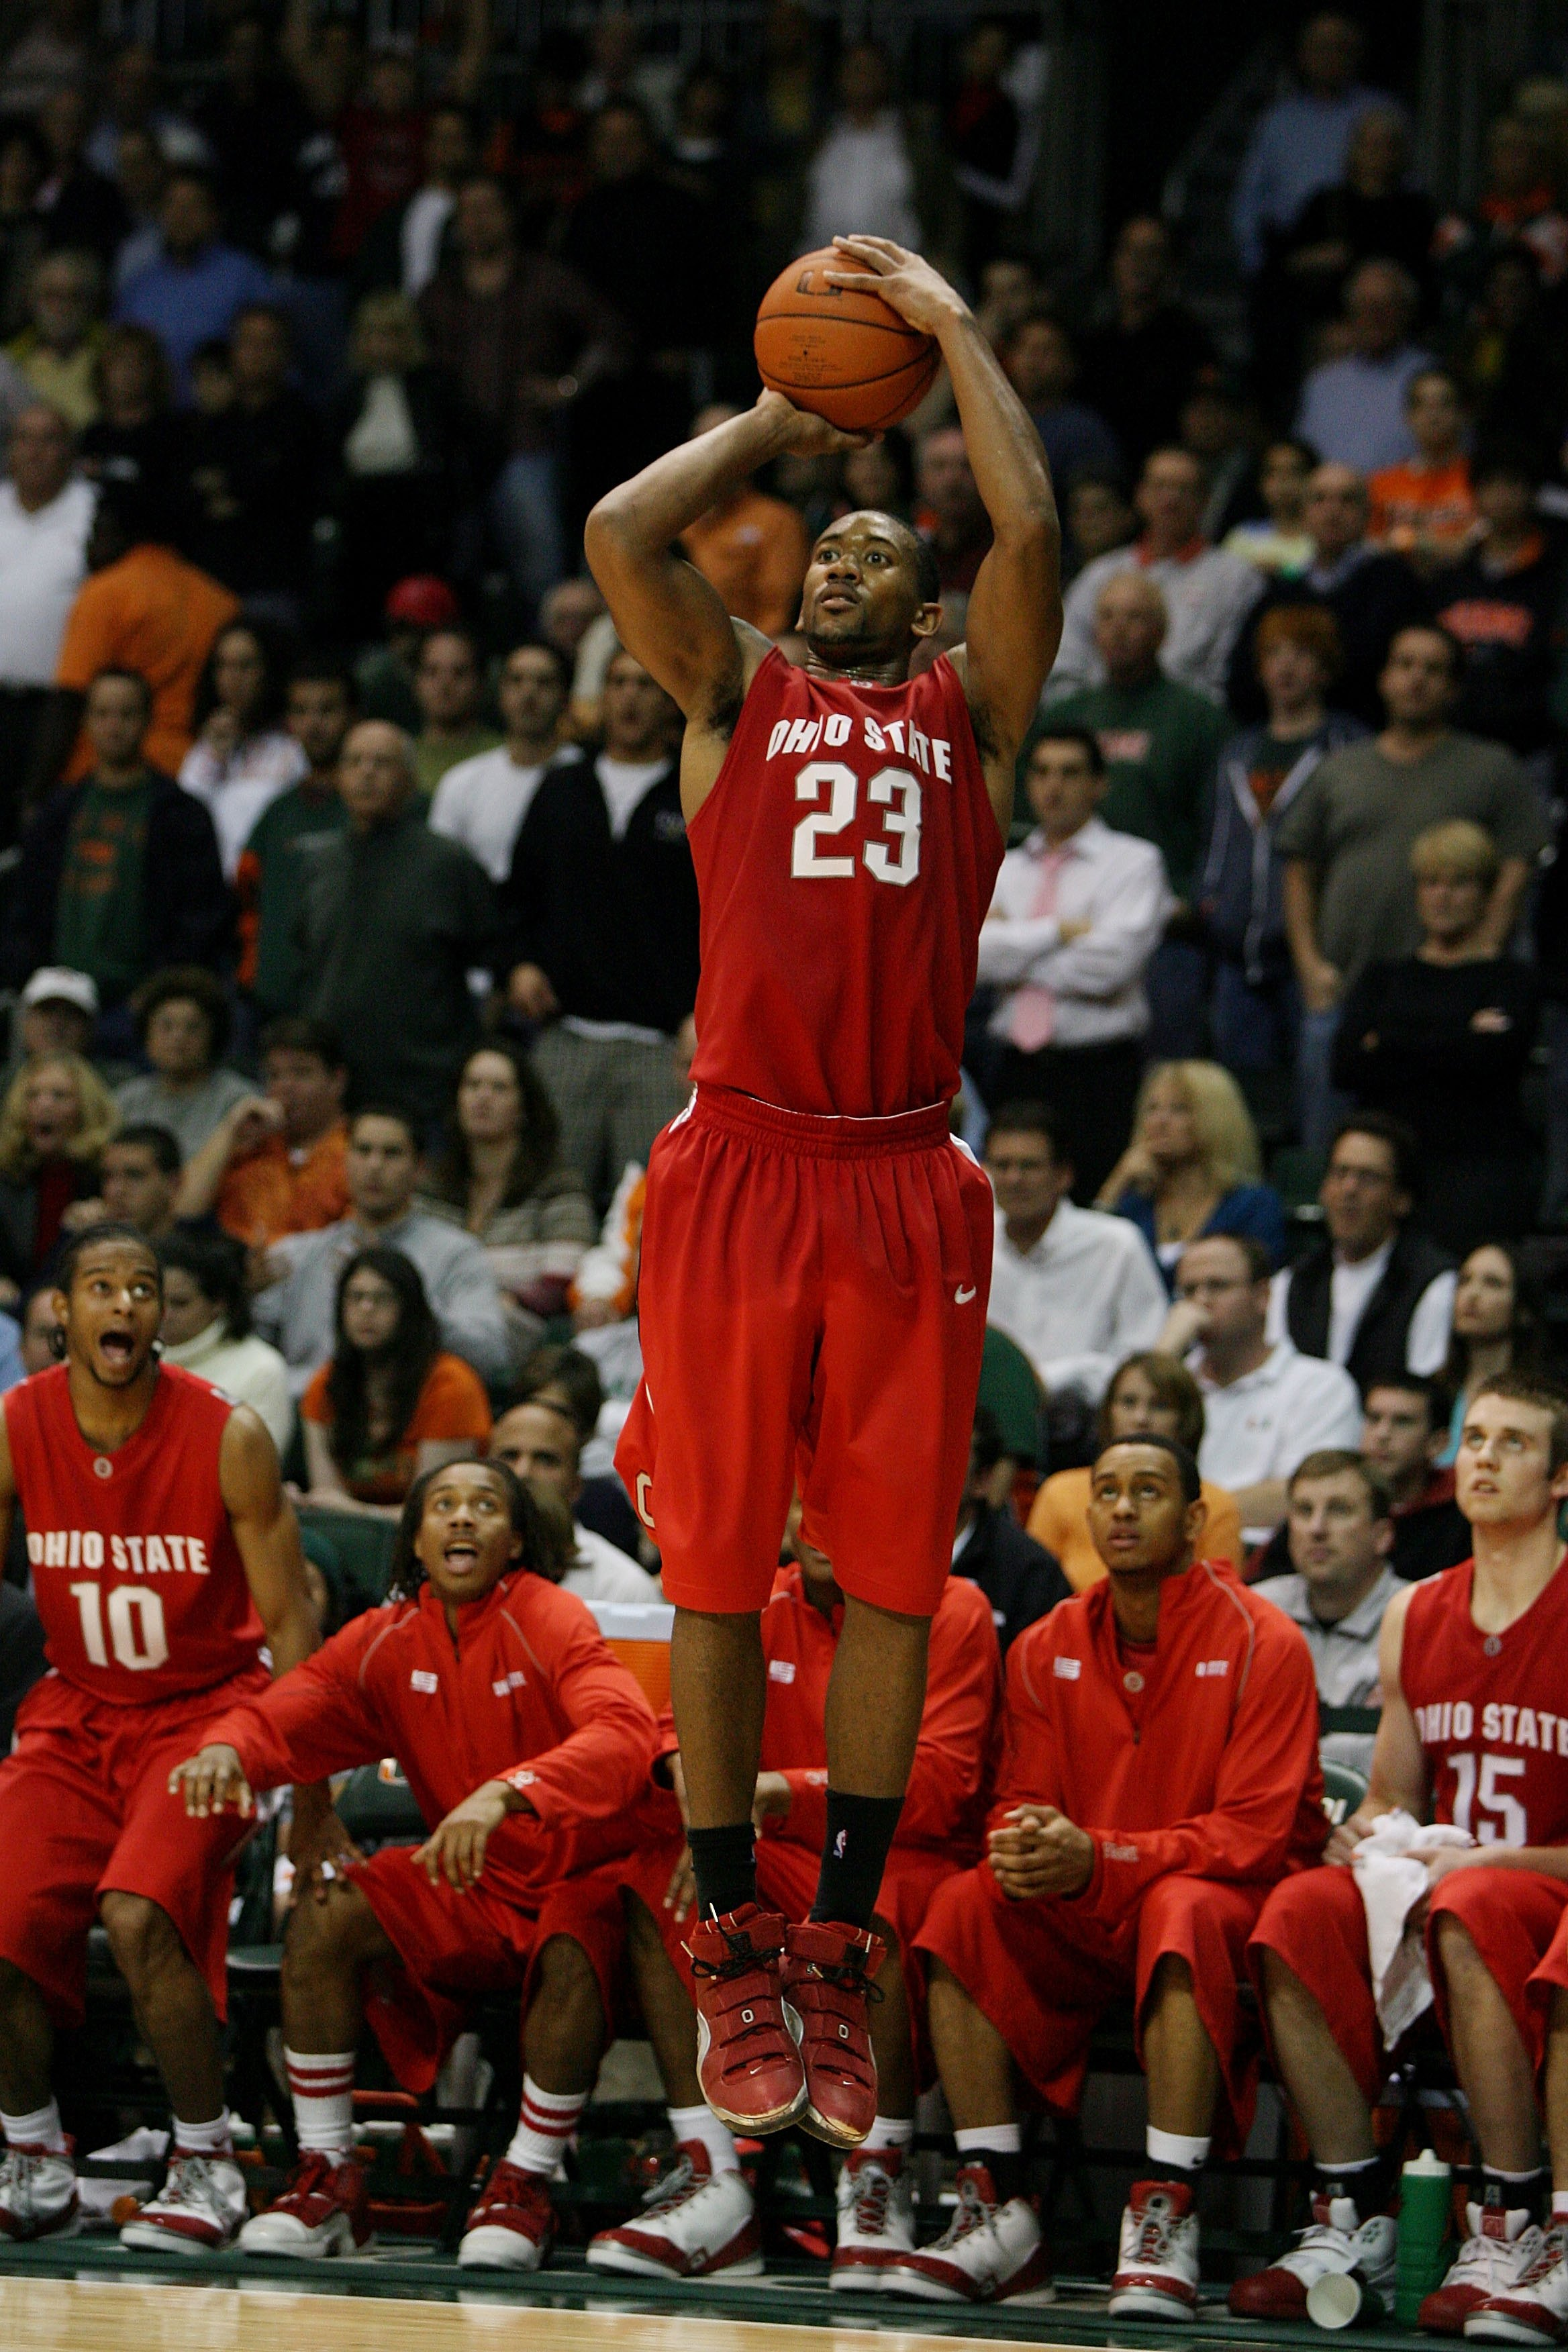 CORAL GABLES, FL - DECEMBER 02:  David Lighty #23 of the Ohio State Buckeyes shoots against the Miami Hurricanes at BankUnited Center on December 2, 2008 in Coral Gables, Florida. Ohio State defeated Miami 73-68.  (Photo by Doug Benc/Getty Images)